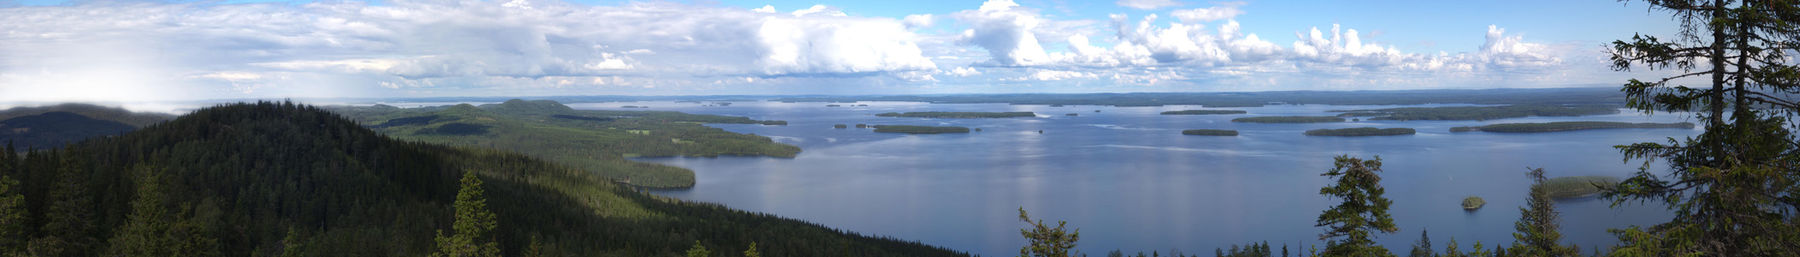 Lake Pielinen, Koli National Park